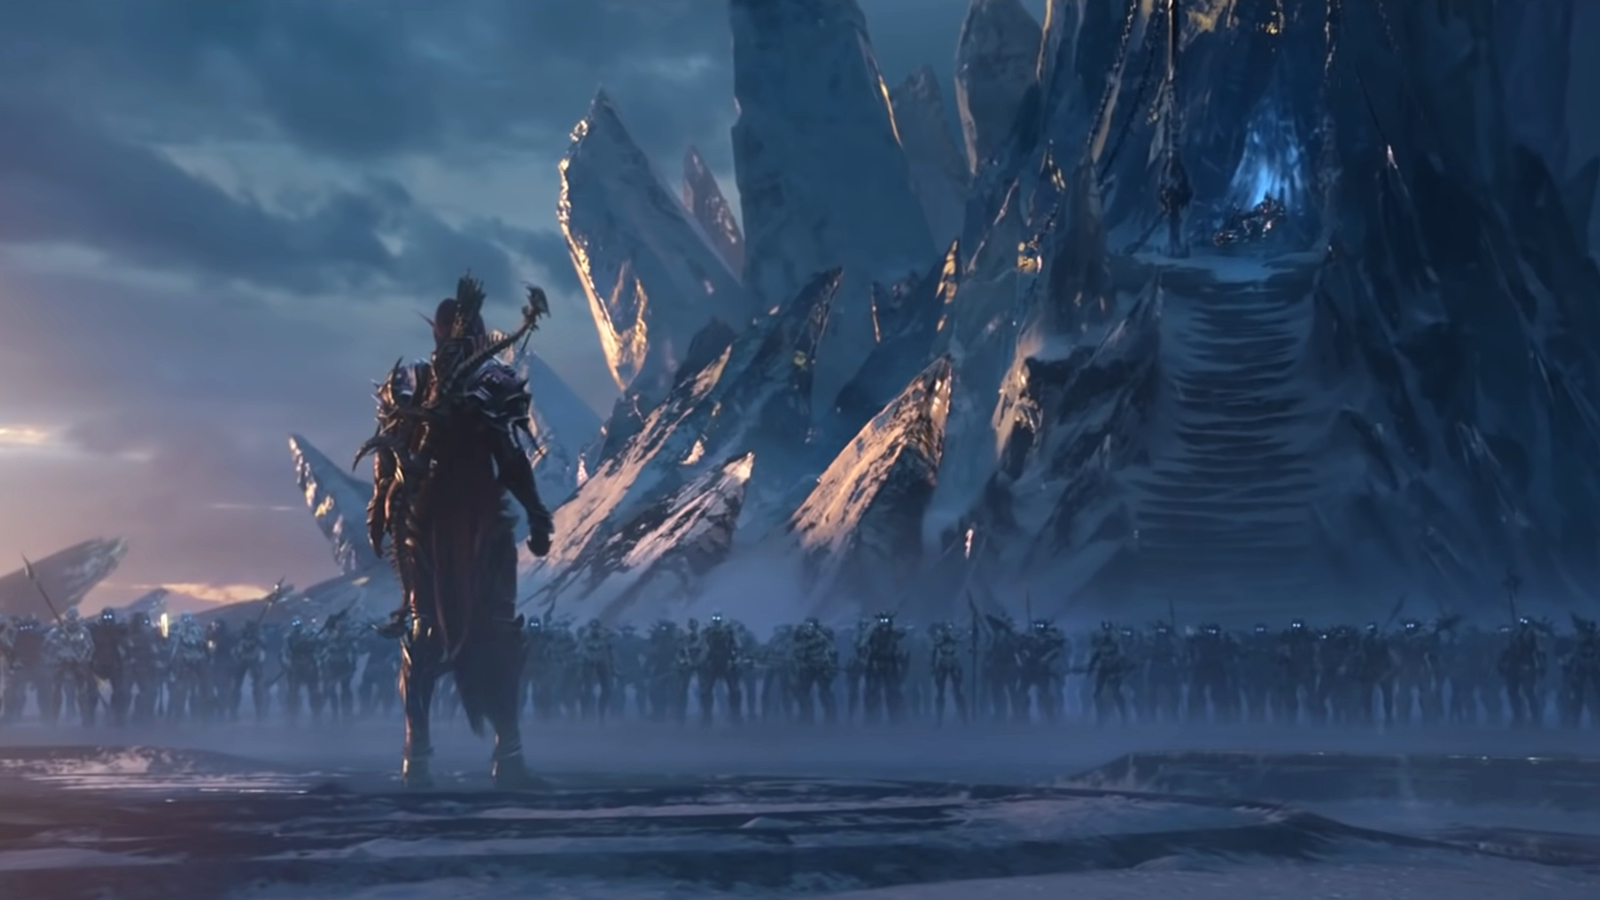 Sylvanas approaches The Lich King to open the Shadowlands.